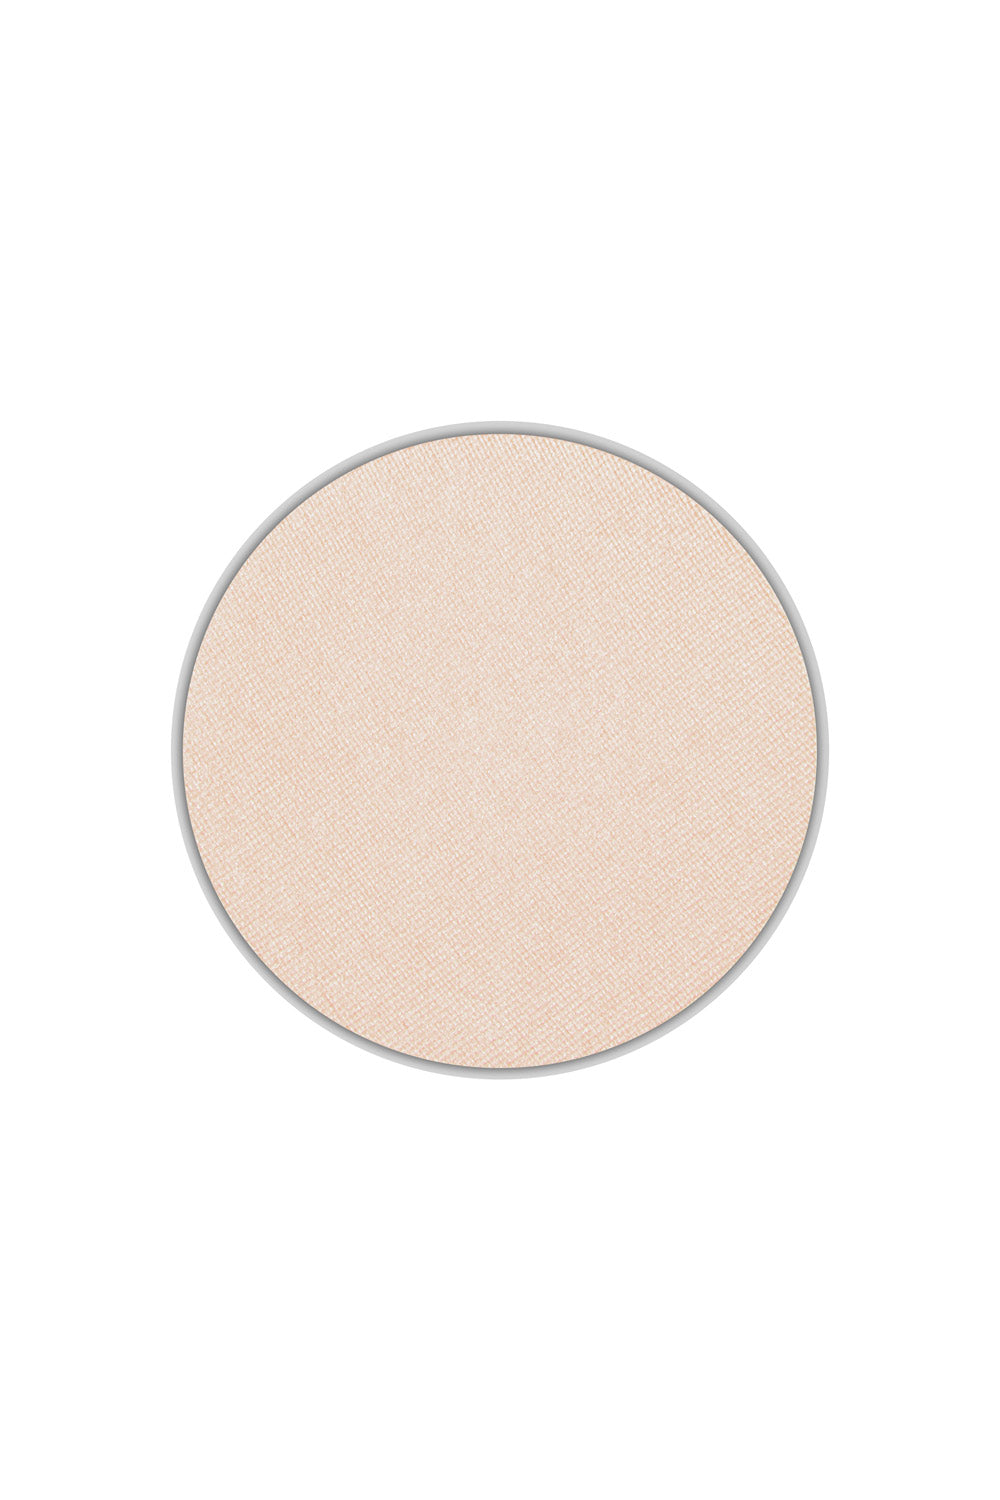 Pale Vanilla - Eyeshadow Pan